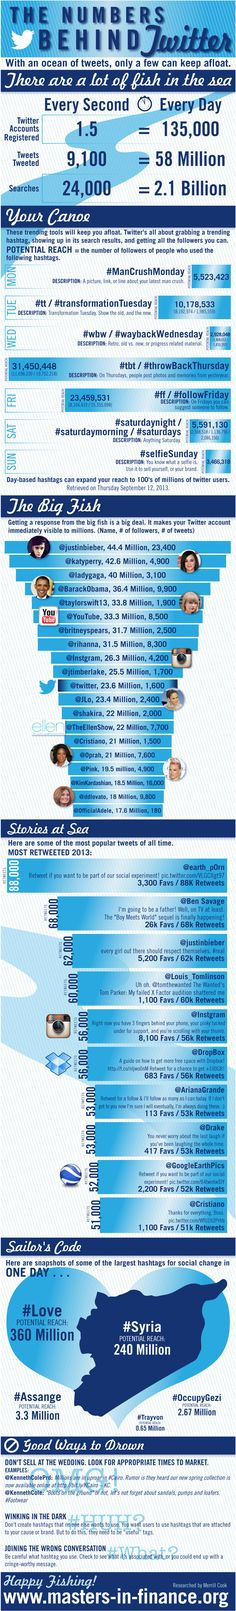 60 Sensational Social Media Facts and Statistics on Twitter in 2013